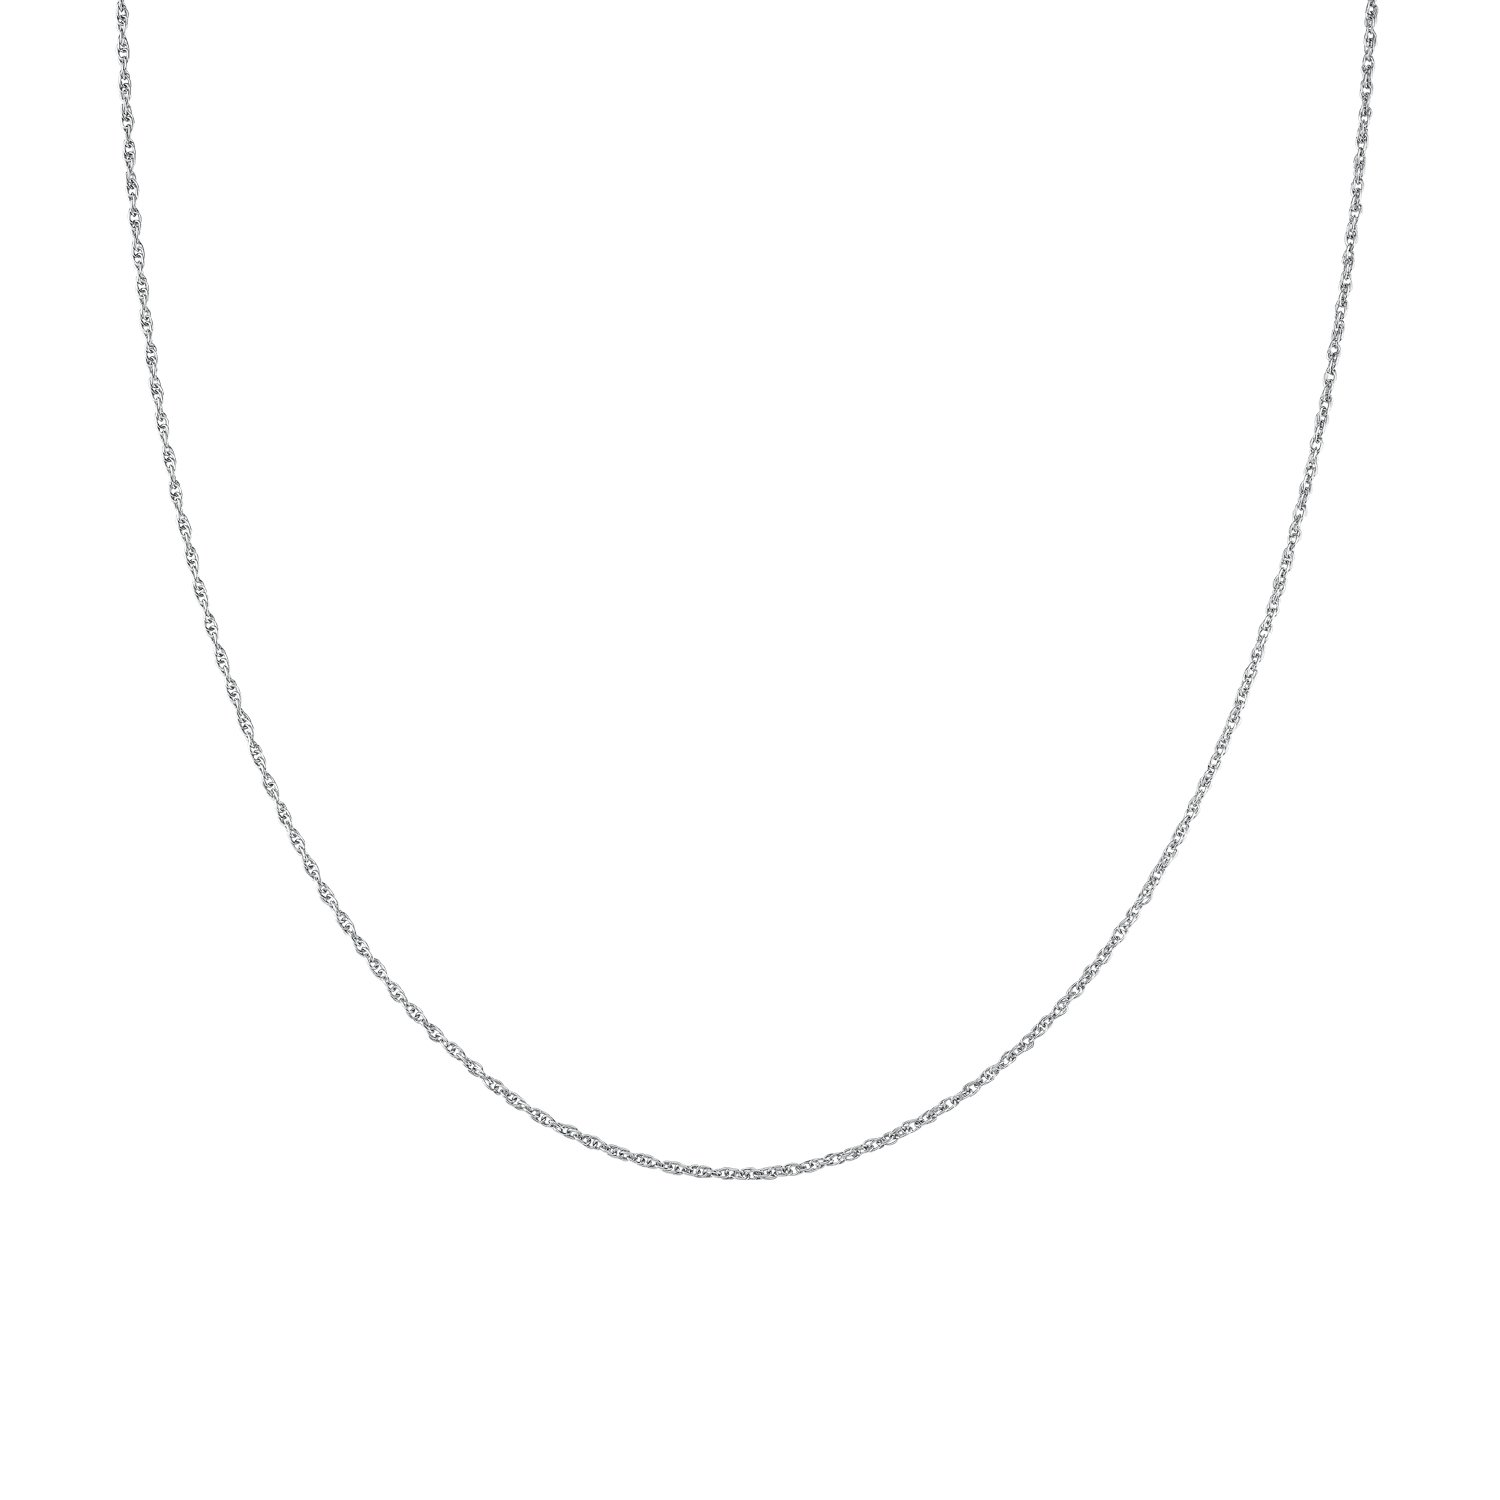 925 Solid Sterling Silver Diamond Cut 1.3MM ROPE Chain Necklace MADE IN ITALY- Thin,silky and SUPER Strong and Rhodium Plated 20'' Inch